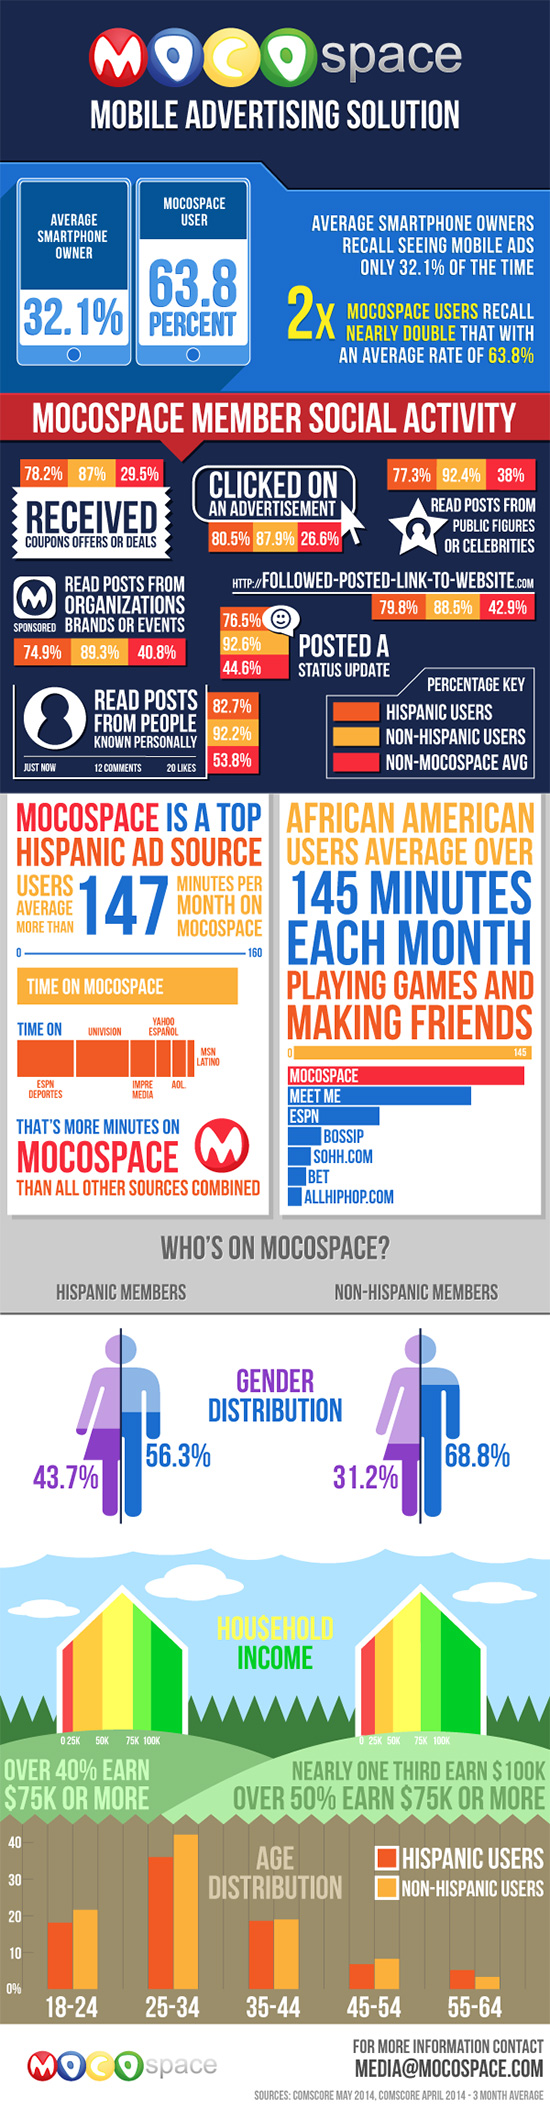 MocoSpace Mobile Advertising Solution